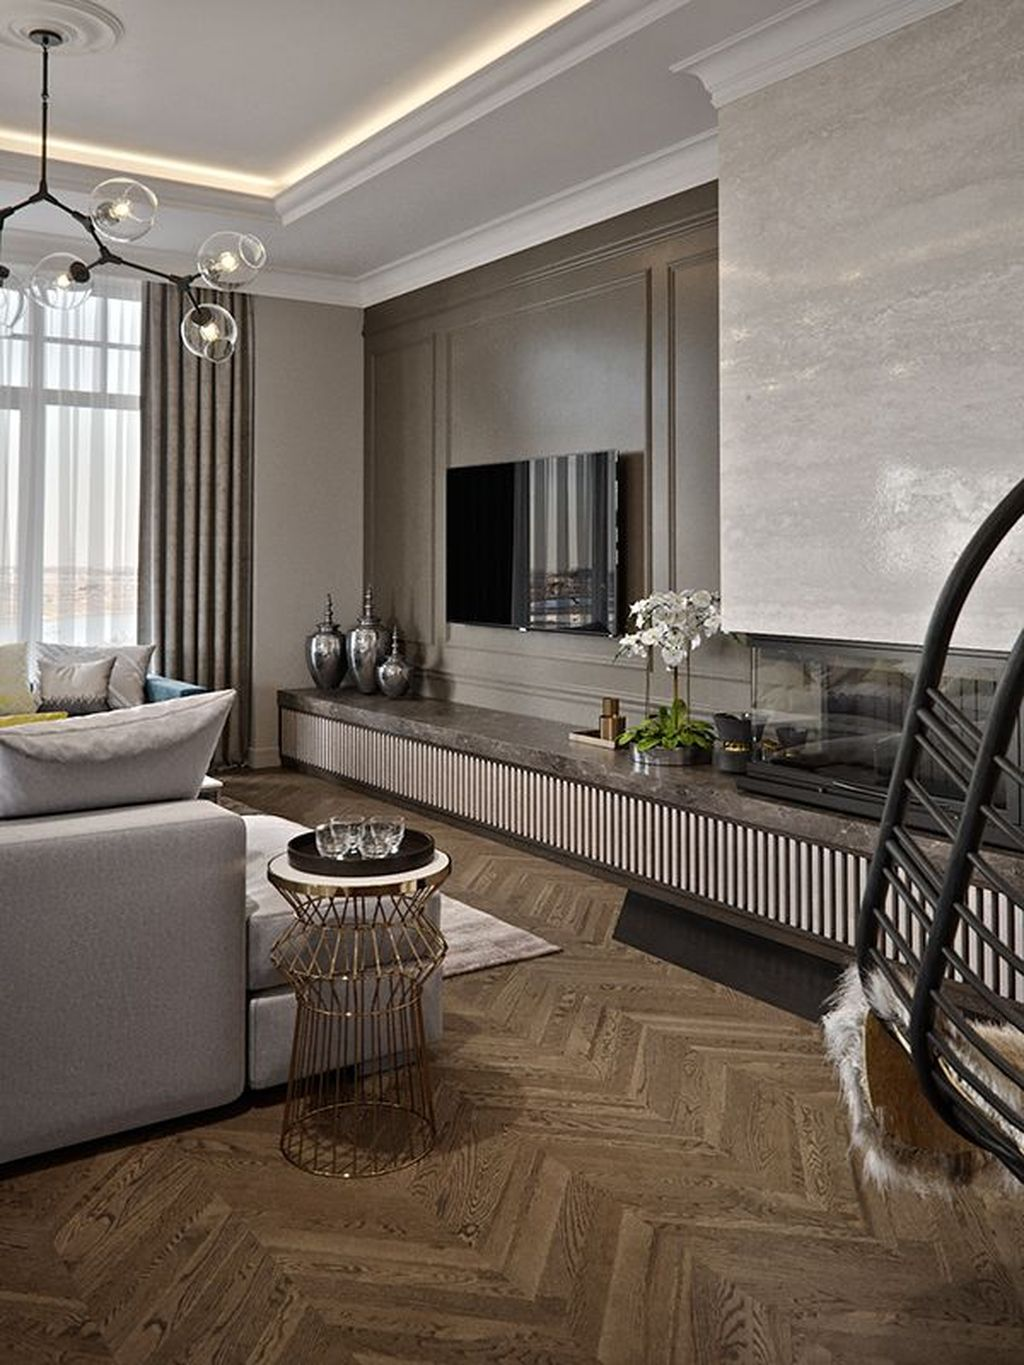 The Best Modern Apartment Design Ideas 01